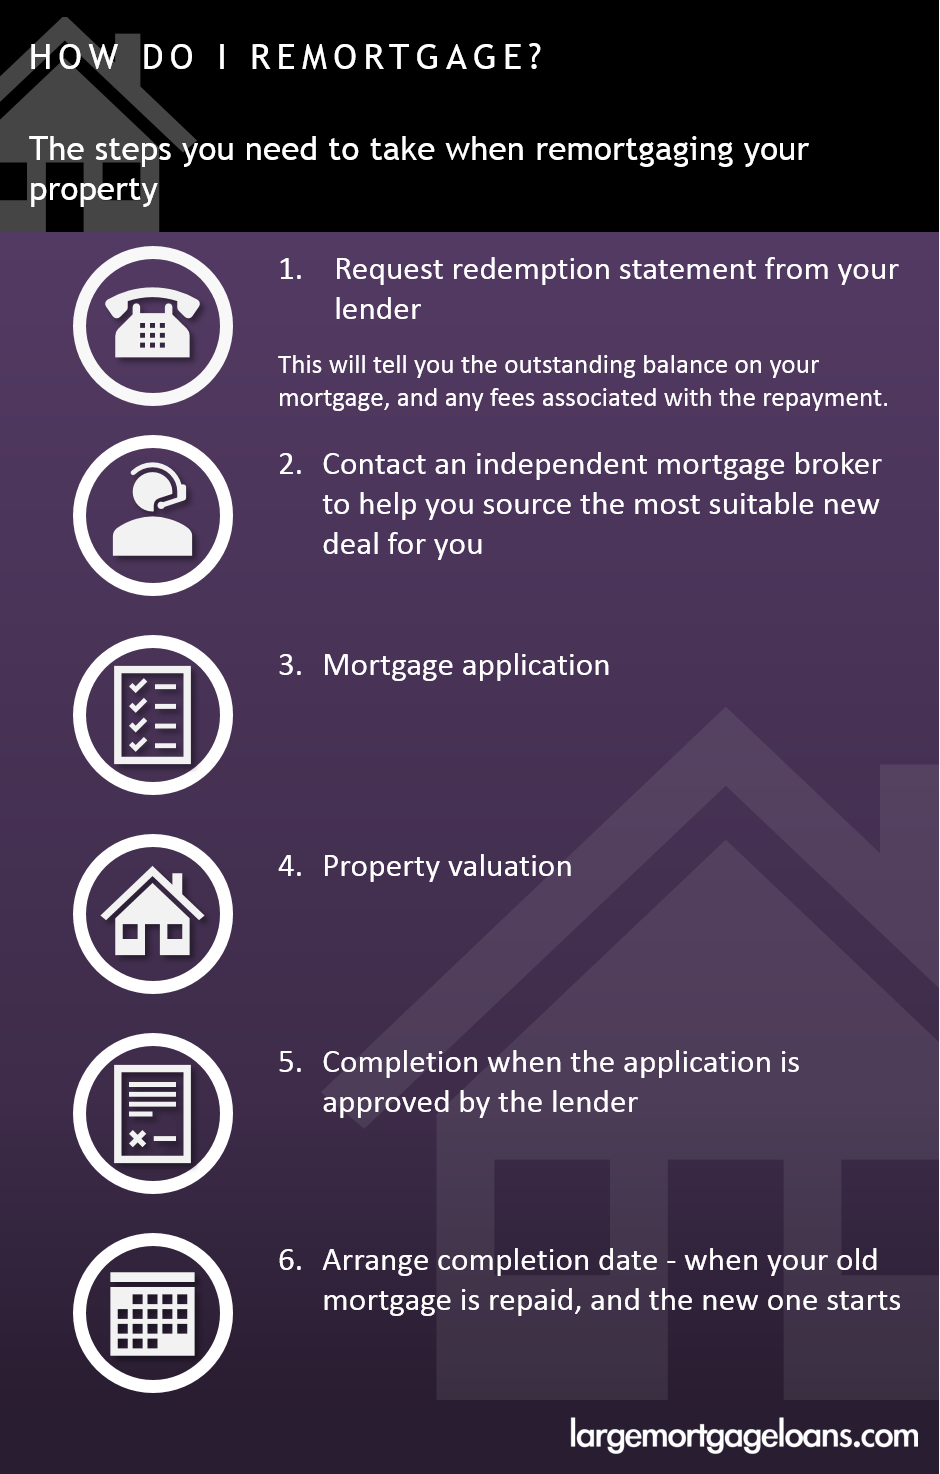 How do I remortgage?